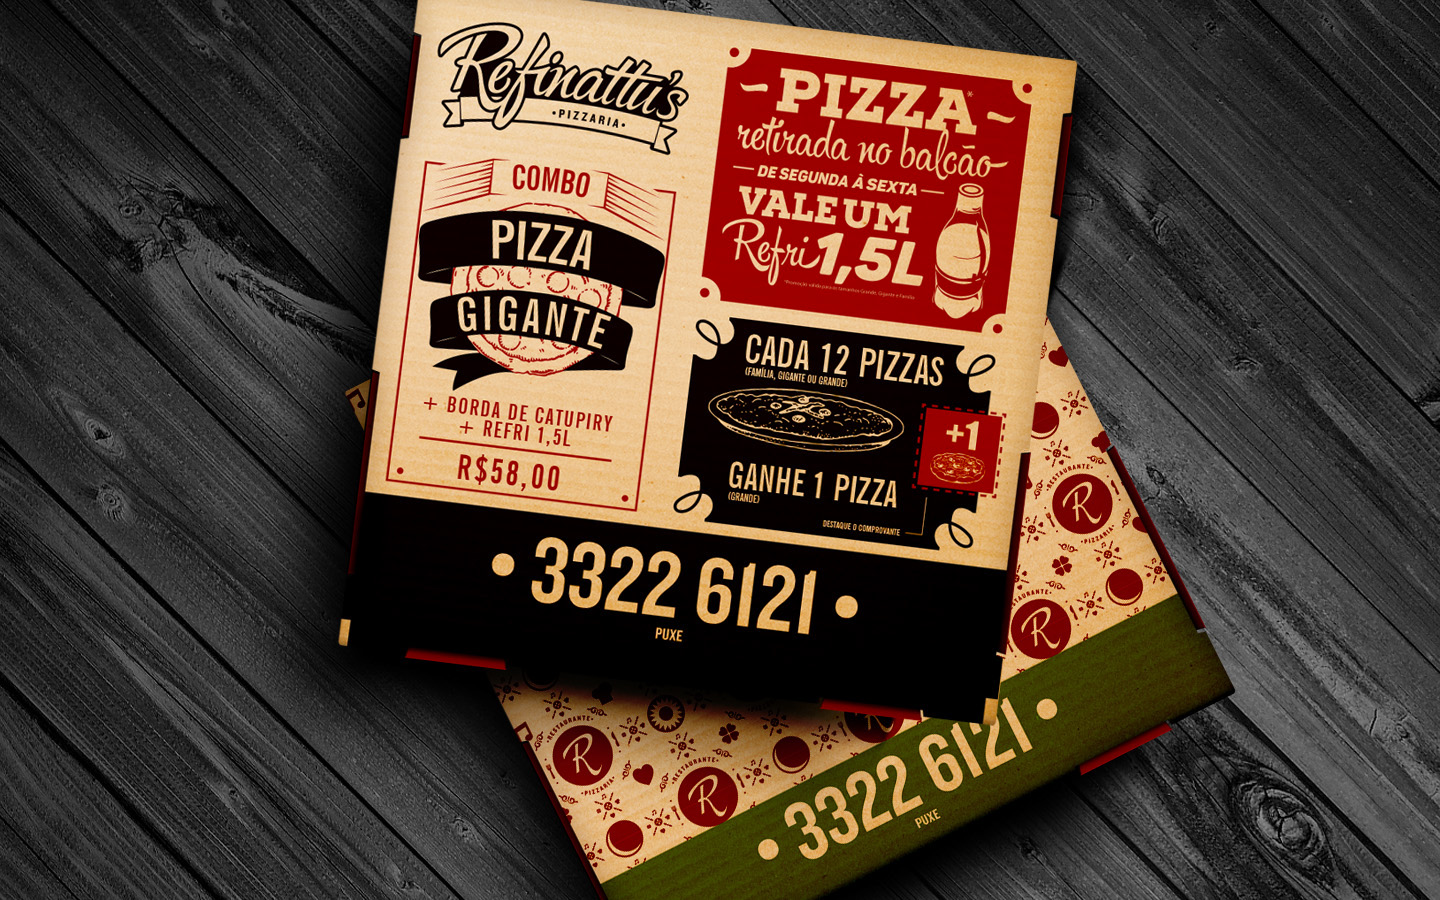 Refinattus Pizza and Restaurant